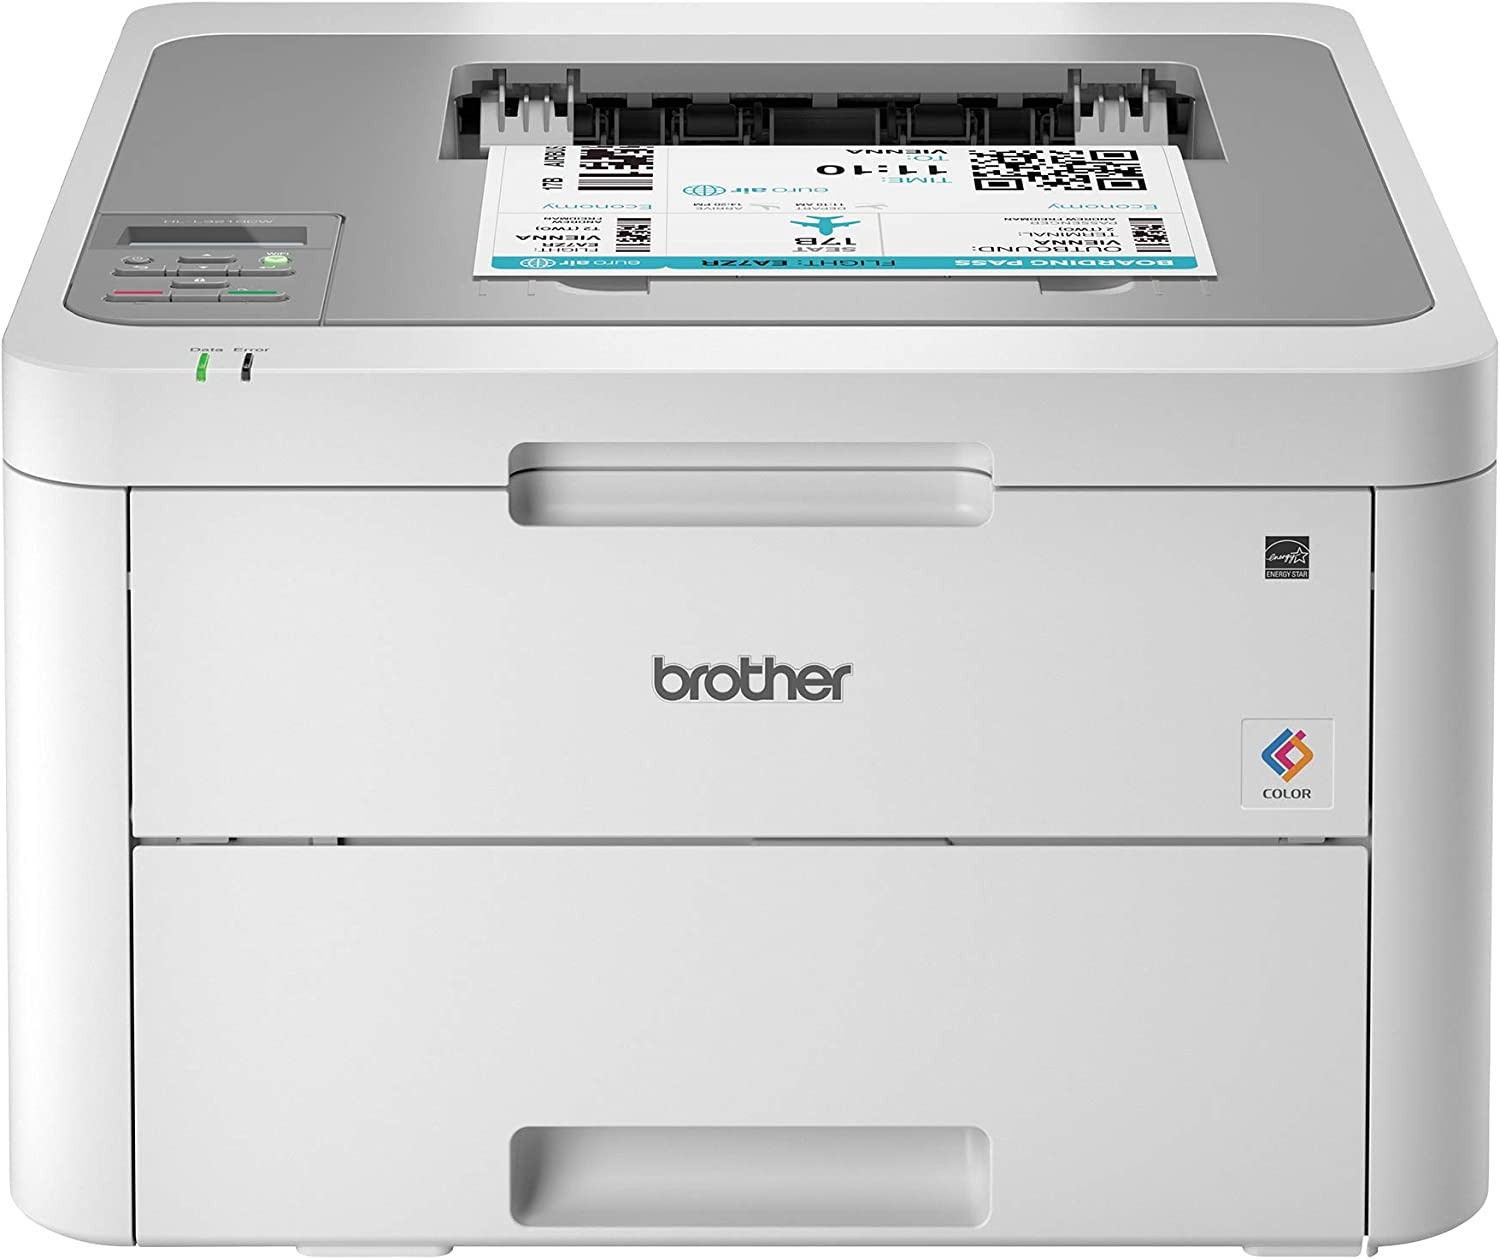 Brother HL-L3210CW Compact Digital Color Printer Providing Laser Printer Quality Results with Wireless,  Dash Replenishment Ready, White: Electronics